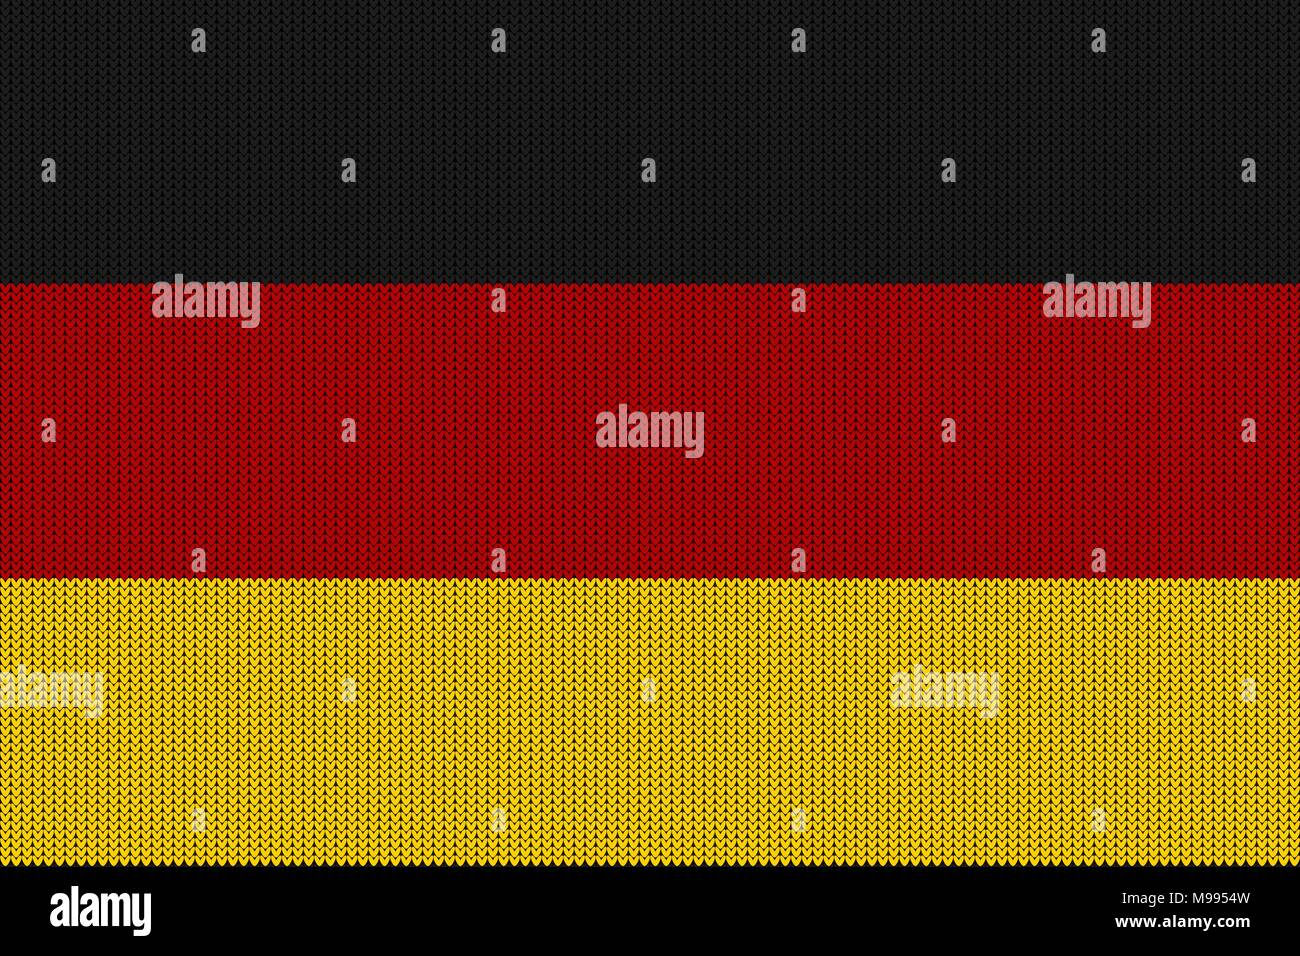 Flag of Germany on a vector knitted woolen texture. A knitted German flag creates a seamless pattern - Stock Image